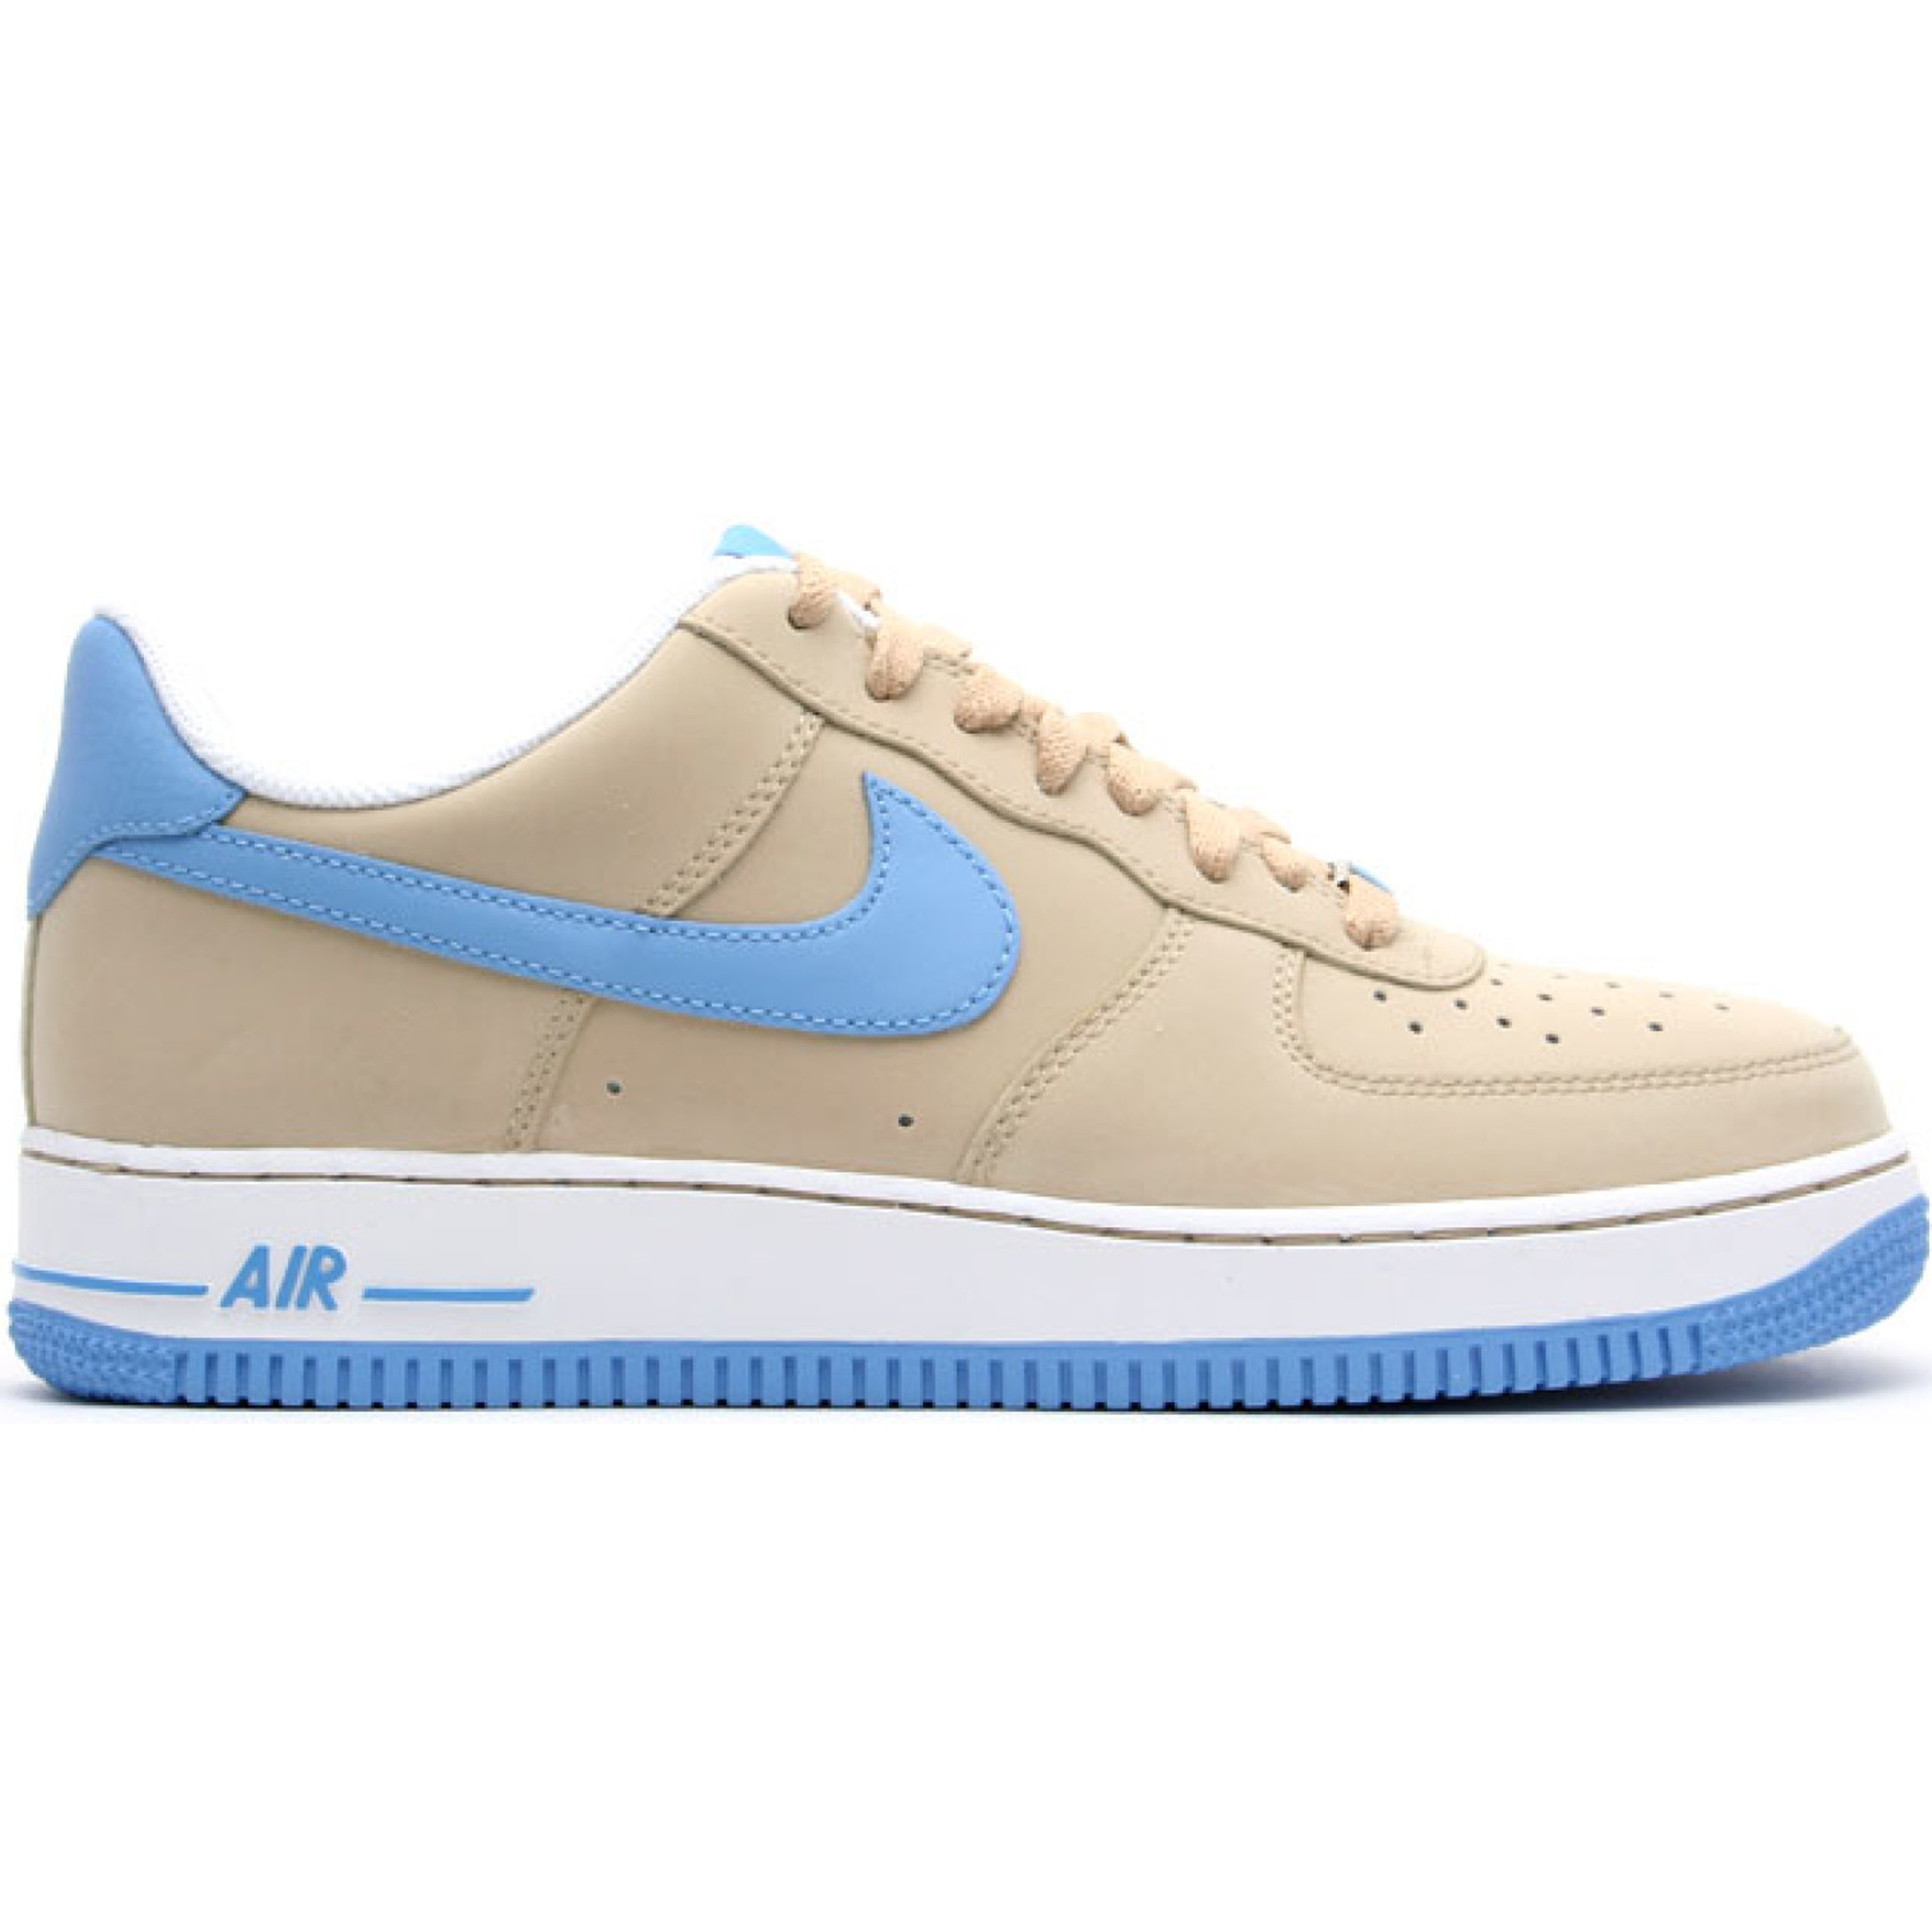 Nike Air Force 1 Low Linen University Blue (315122-241)